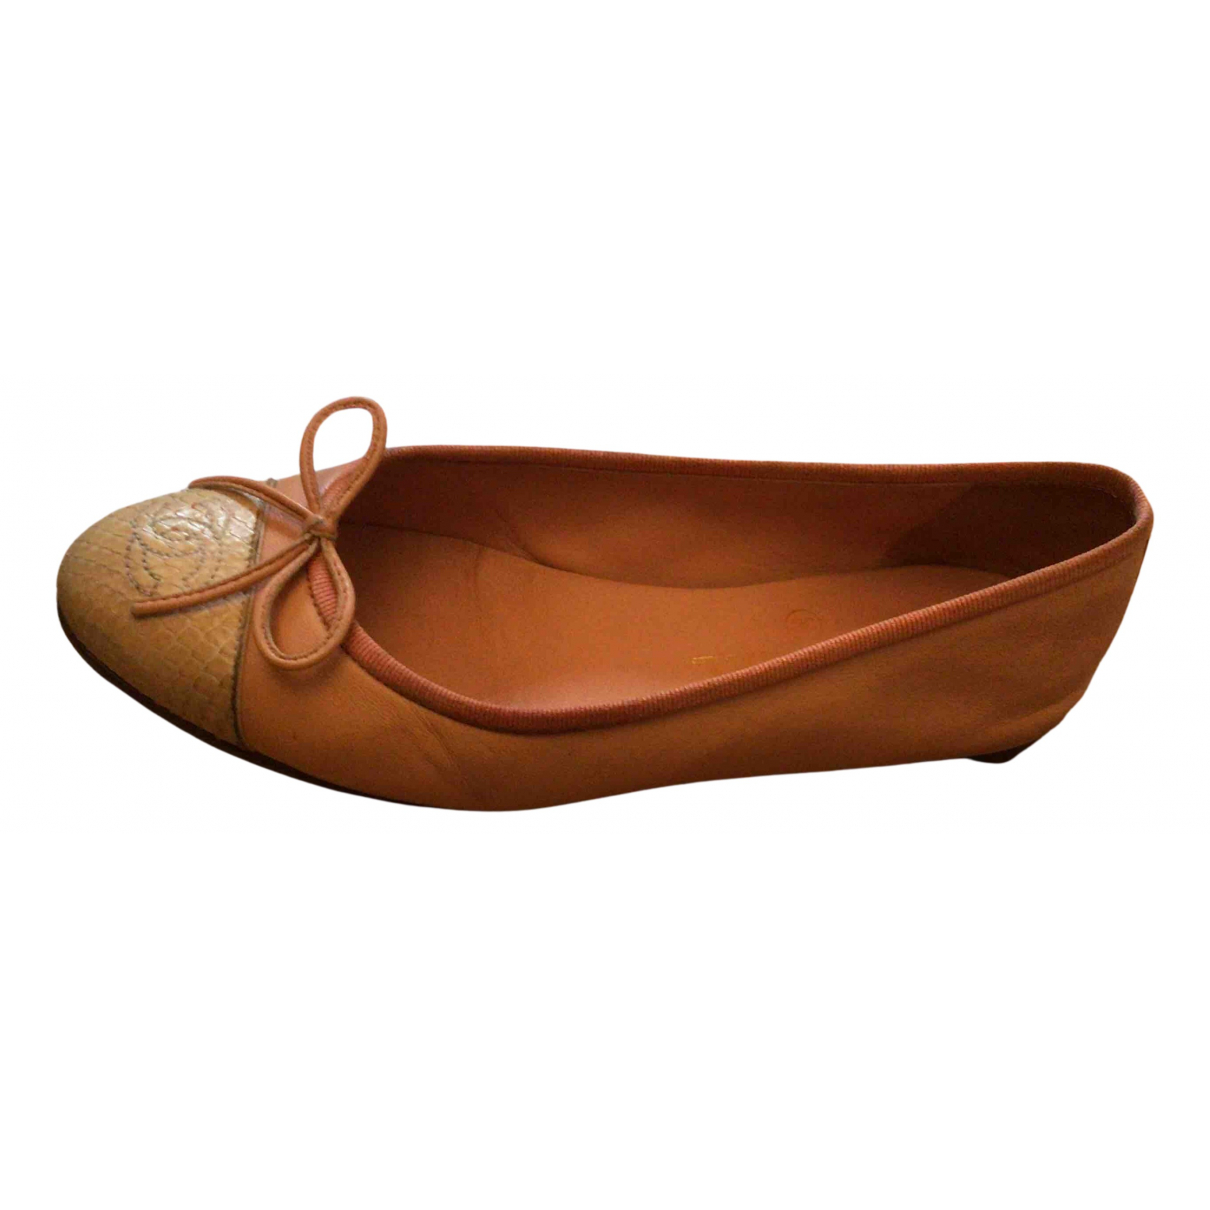 Chanel N Pink Leather Ballet flats for Women 36 EU